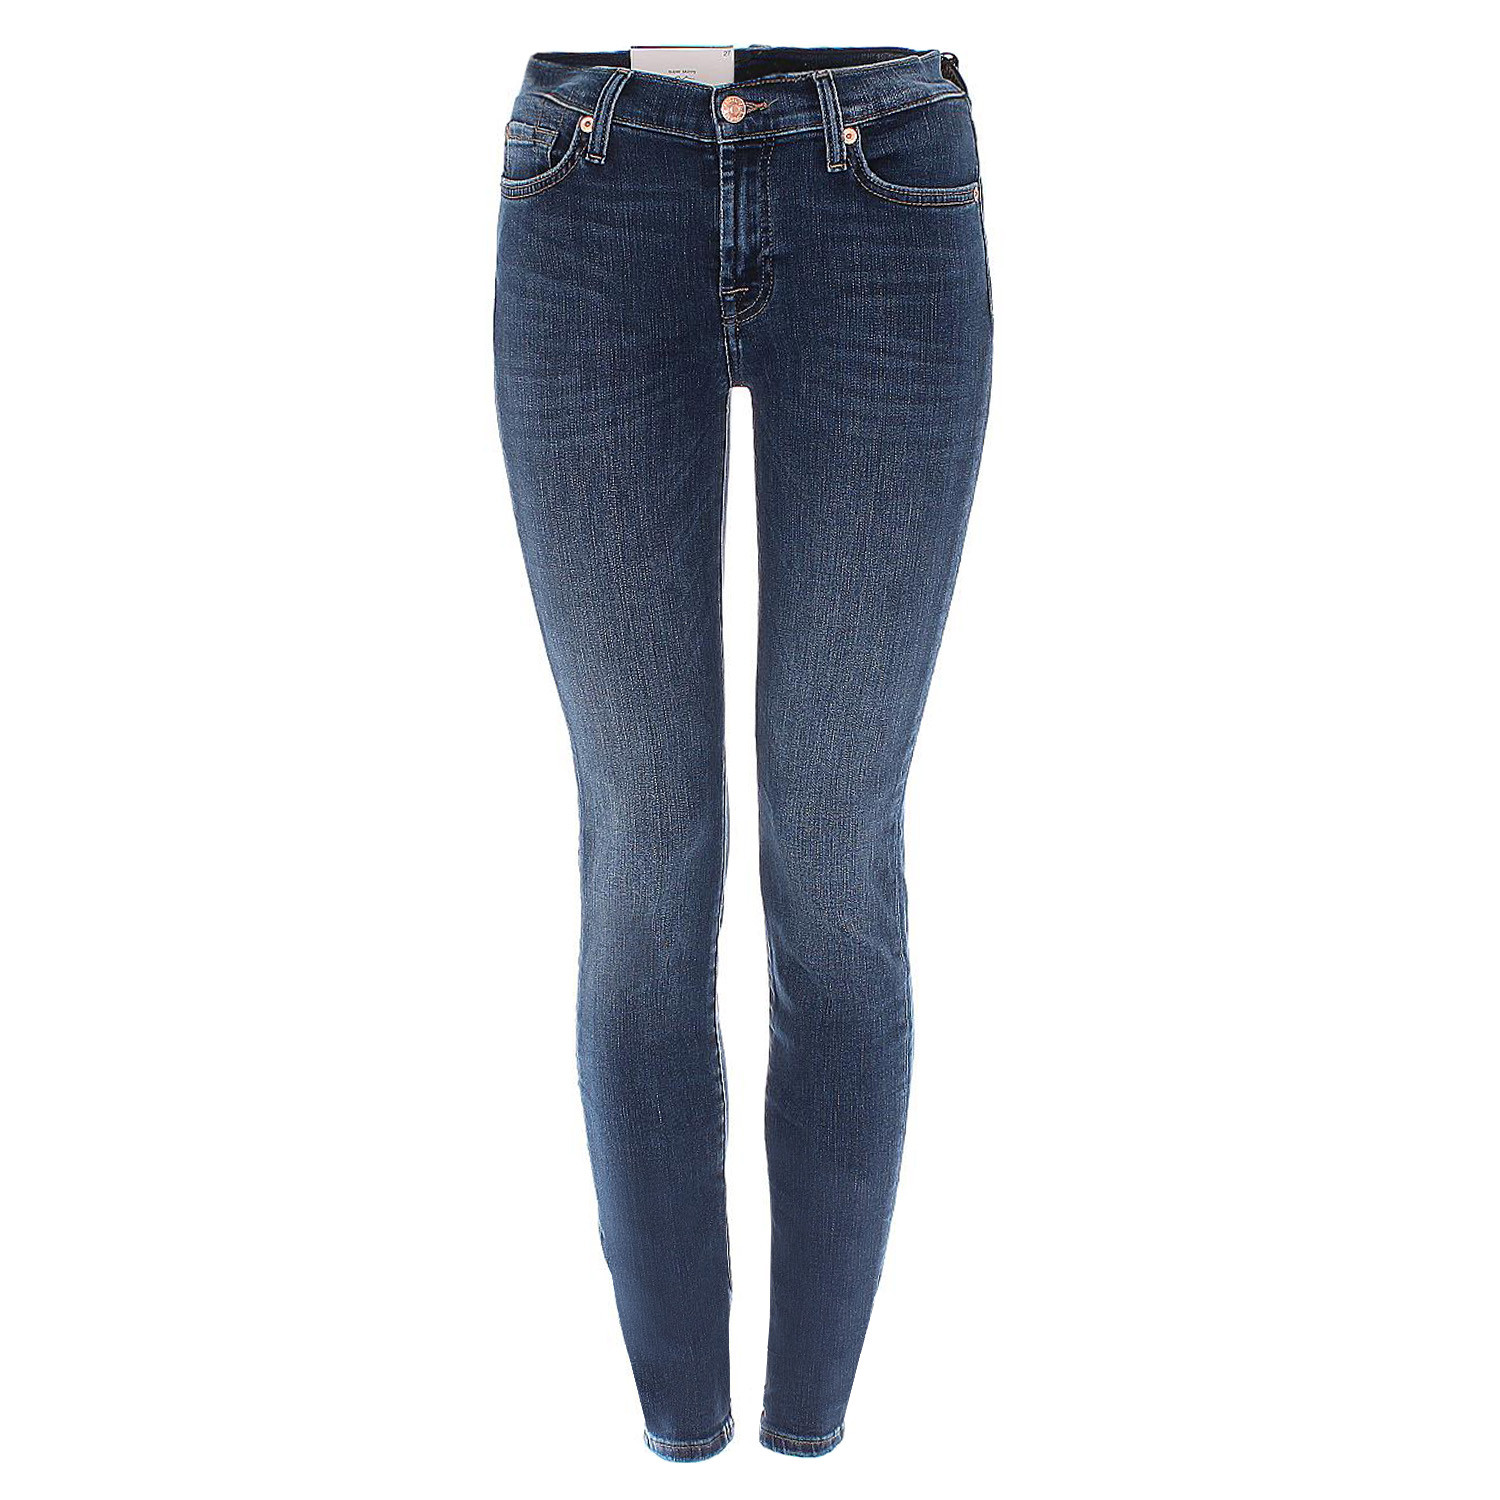 Afbeelding van 7 For All Mankind Jswtu58cty denim